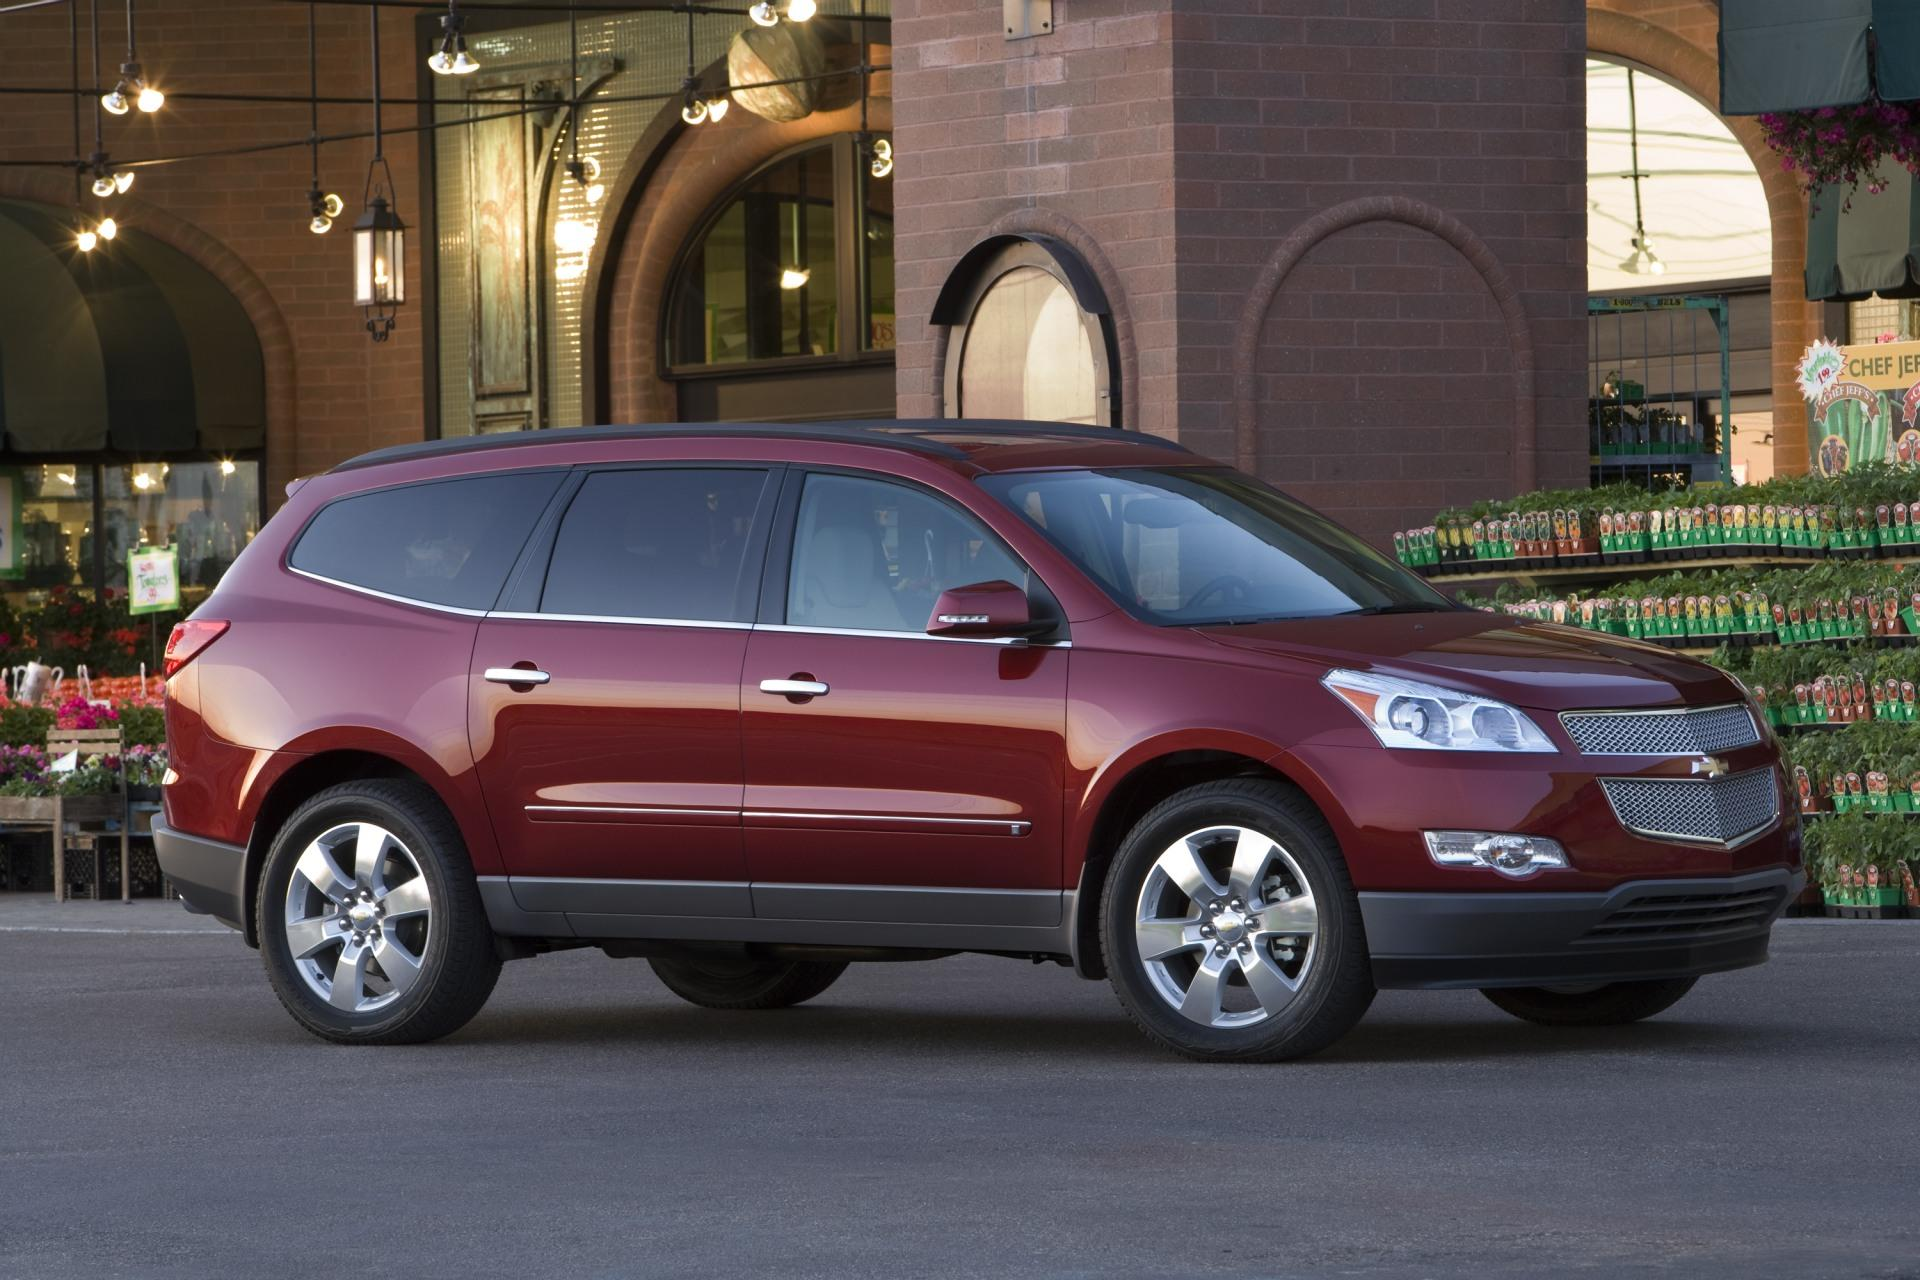 Antique Vintage Cars >> 2010 Chevrolet Traverse News and Information - conceptcarz.com